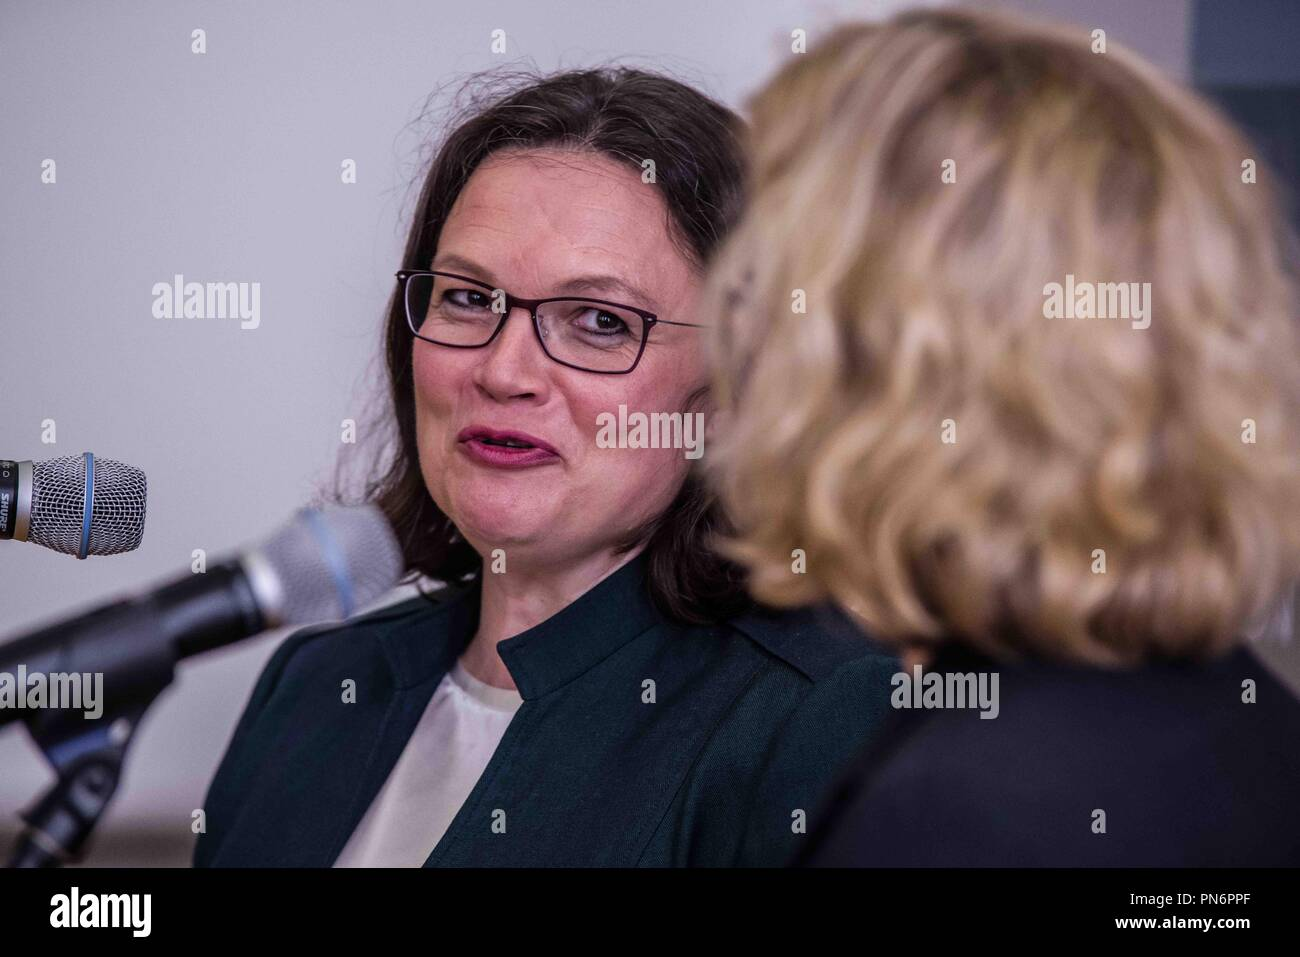 Munich, Bavaria, Germany. 20th Sep, 2018. ANDREA NAHLES, head of the German SPD party. ANDREA NAHLES and NATASCHA KOHNEN, the heads of the German and Bavarian fractions of the SPD party respectively, met at the Bavarian Landtag (Parliament) Thursday morning to discuss numerous issues, including the recent promotion of the embattled and allegedly compromised Hans George Maassen (Maaßen) of the Verfassungsschutz to Staatssekretaer. Despite the alleged giving out of unpublished information to the right-extreme AfD party, consulting with them, and resisting numerous calls to put the party - Stock Image